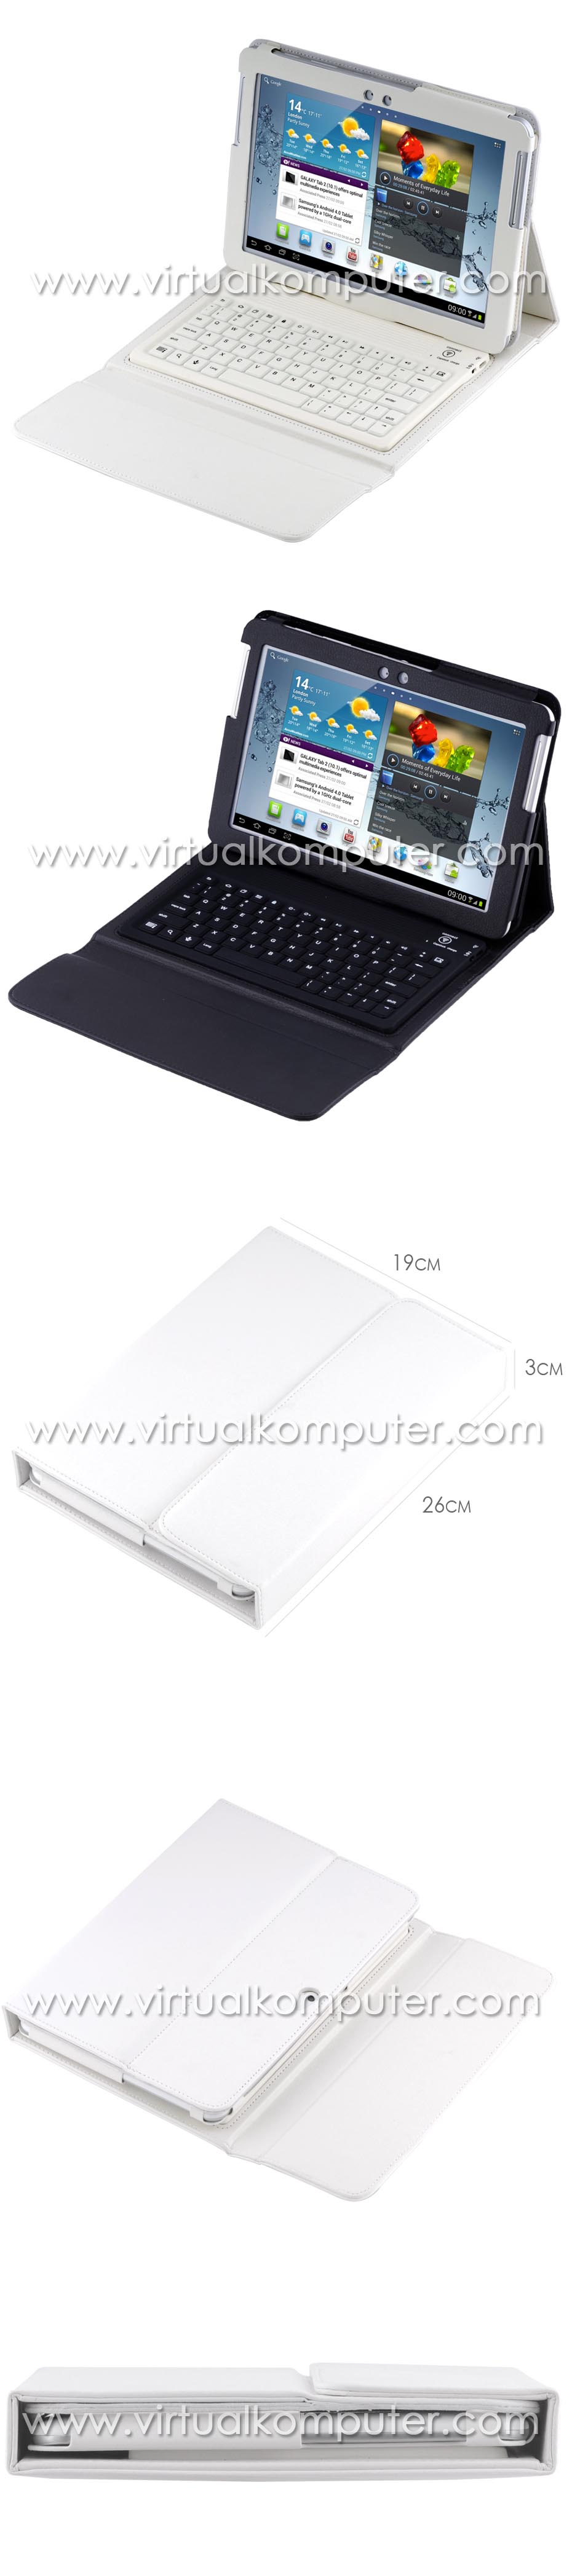 Keyboard Case for Samsung Galaxy Tab 10.1 P5100 P7500 Overview